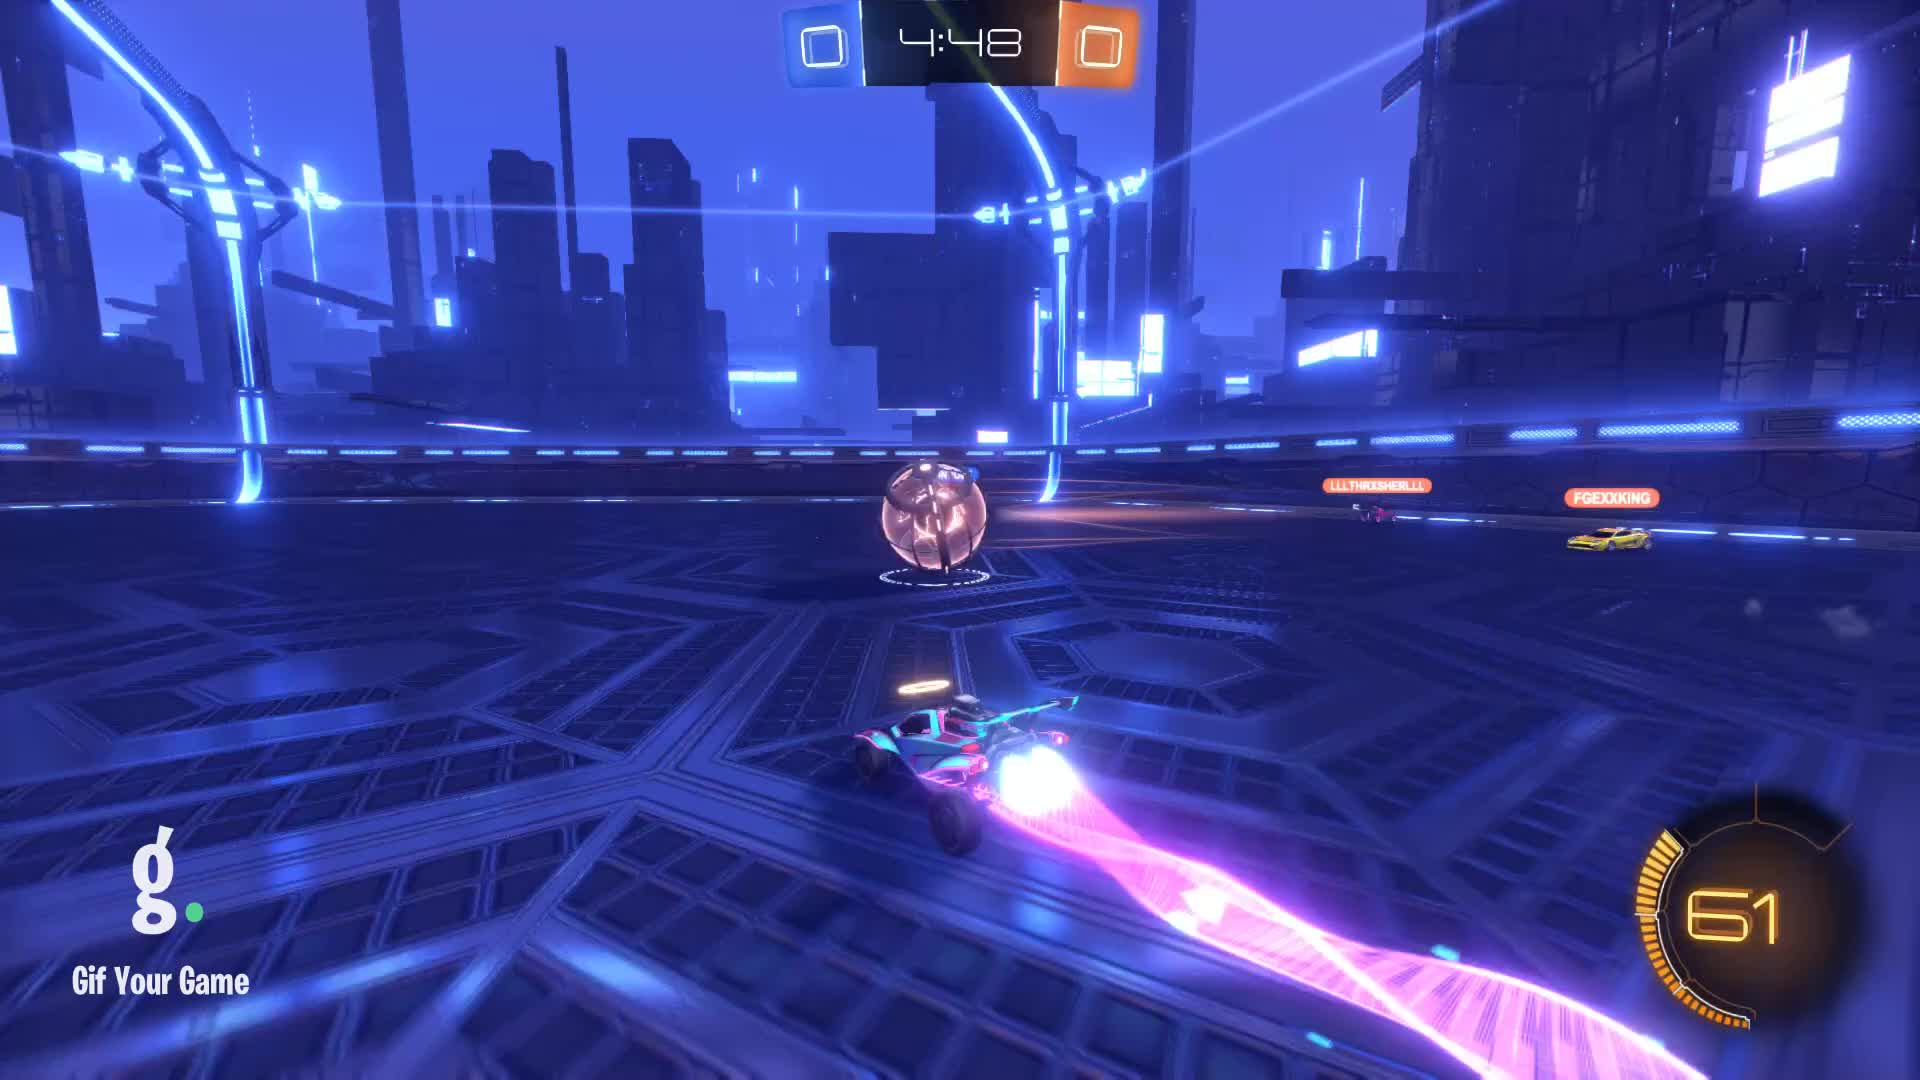 Gif Your Game, GifYourGame, Goal, PrincessWildcat, Rocket League, RocketLeague, Goal 1: PrincessWildcat GIFs